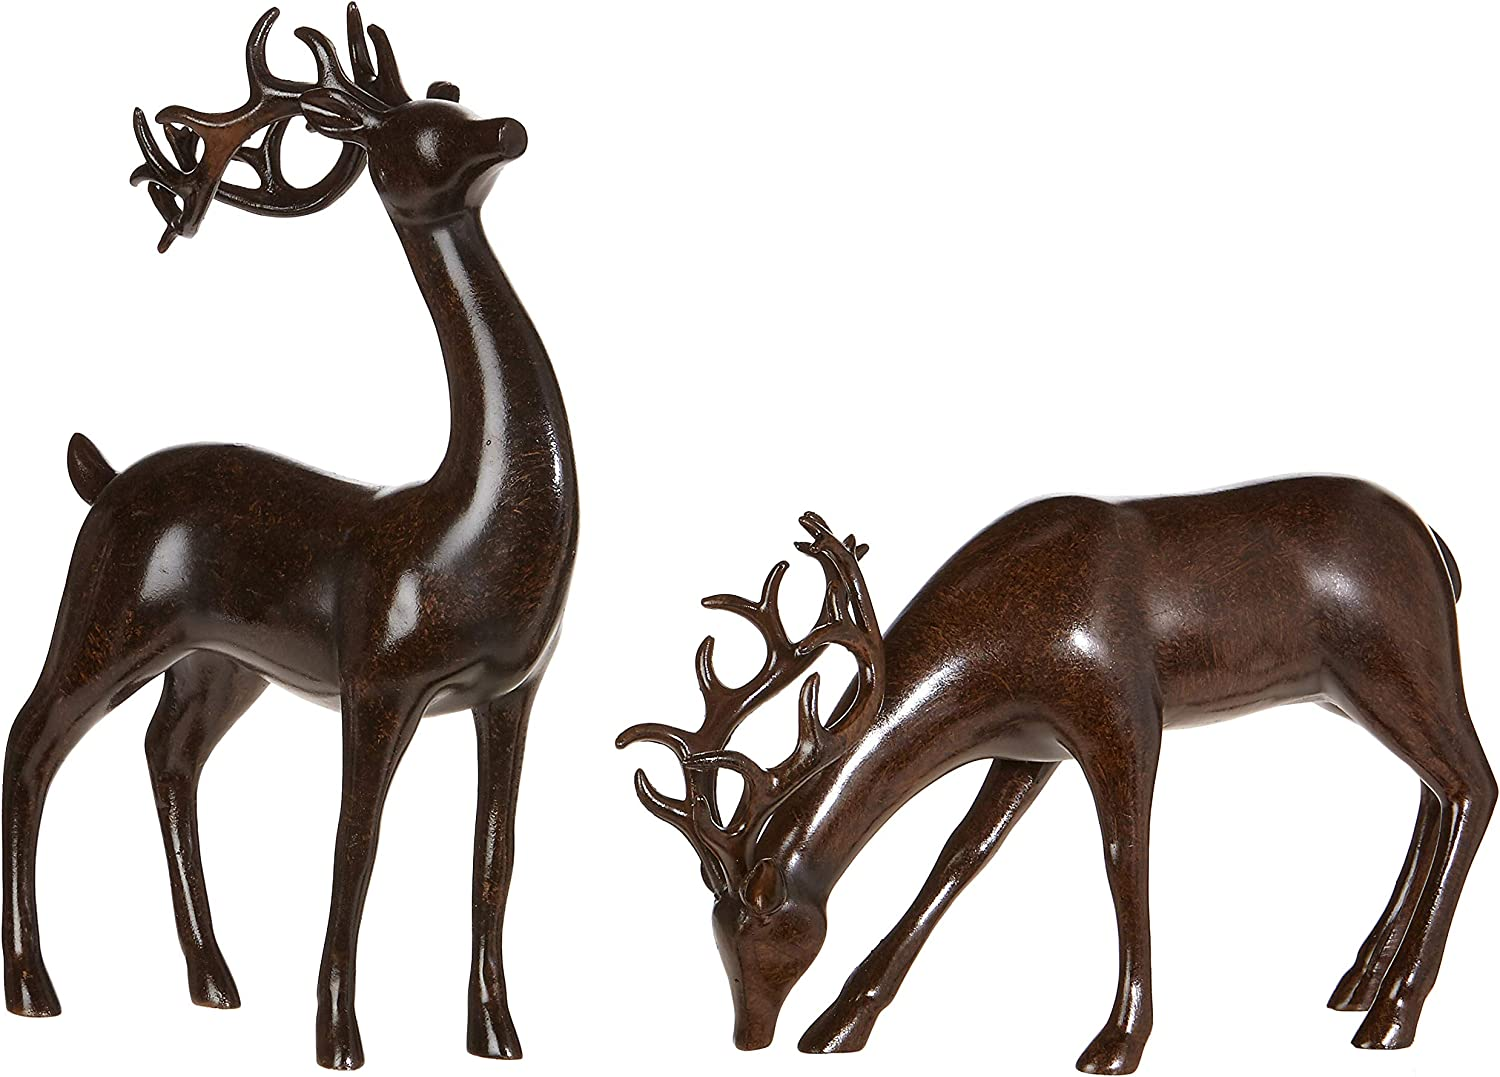 Set Of 2 Holiday Reindeer Figures 12 Inch Faux Mahogany Wood Reindeer Decor By Raz Imports Home Kitchen